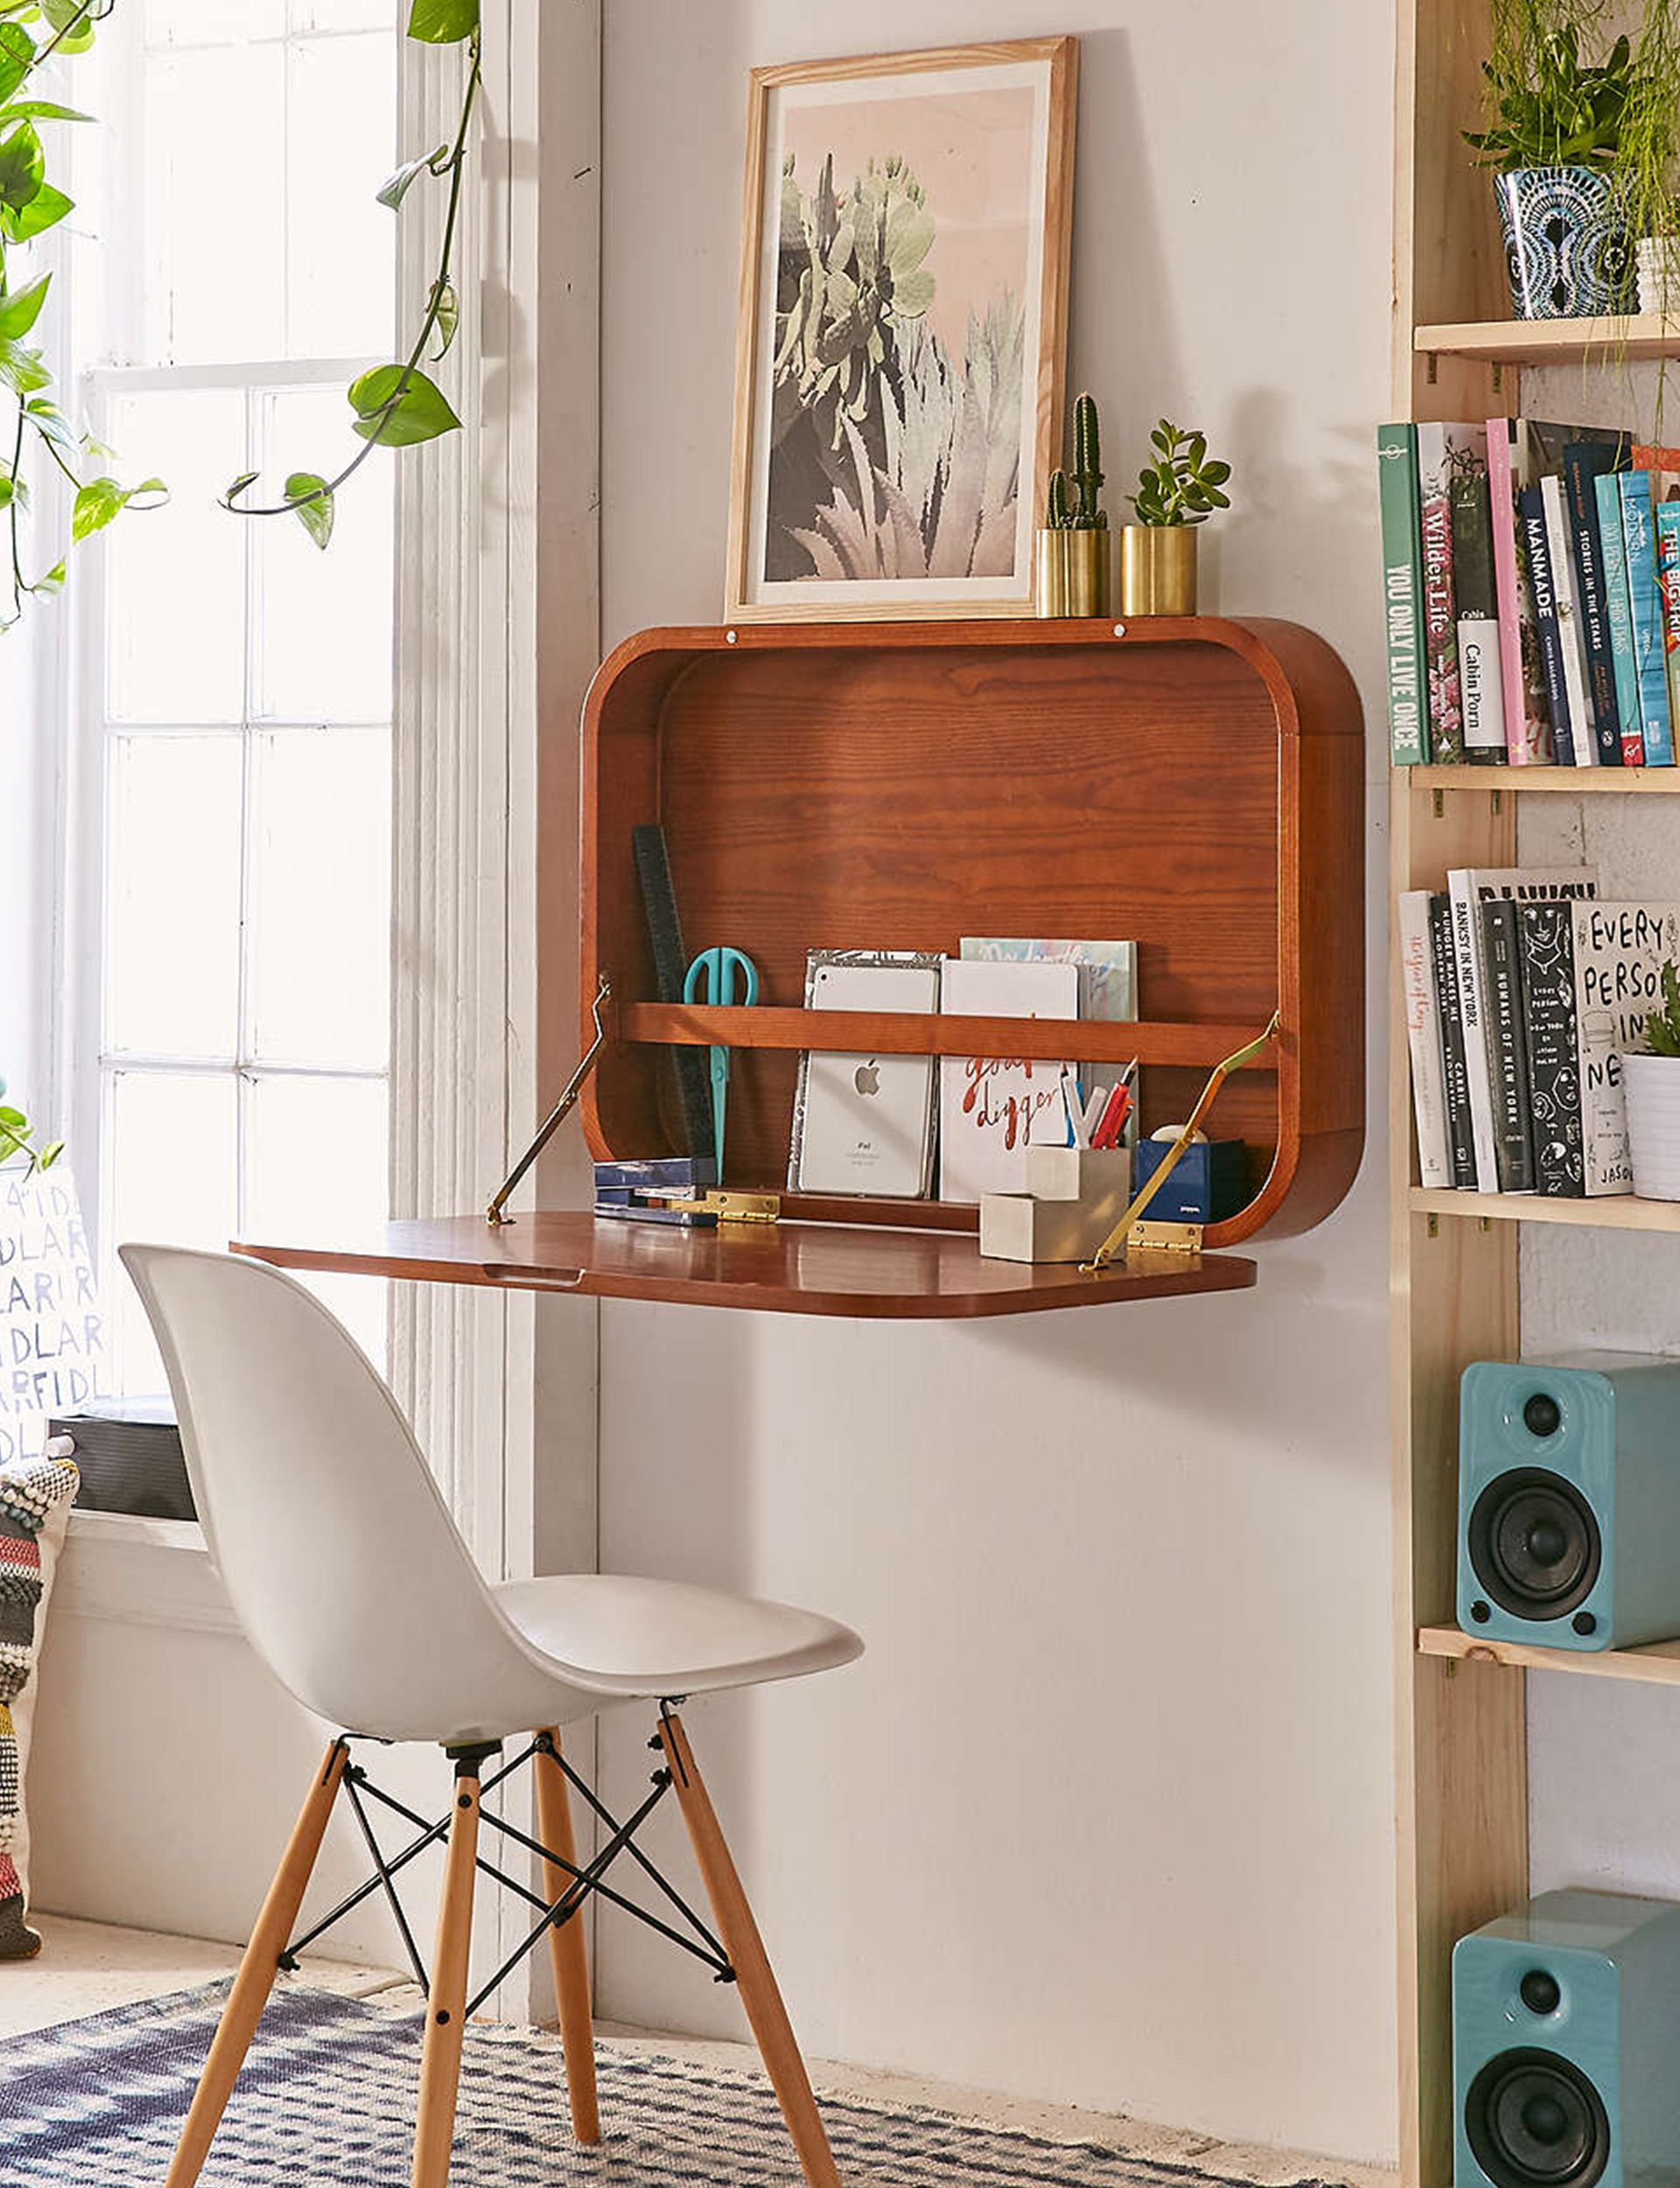 7 Stylish Ways To Make The Most Of A Small Office Space Small Apartment Furniture Small Apartment Decorating Apartment Furniture